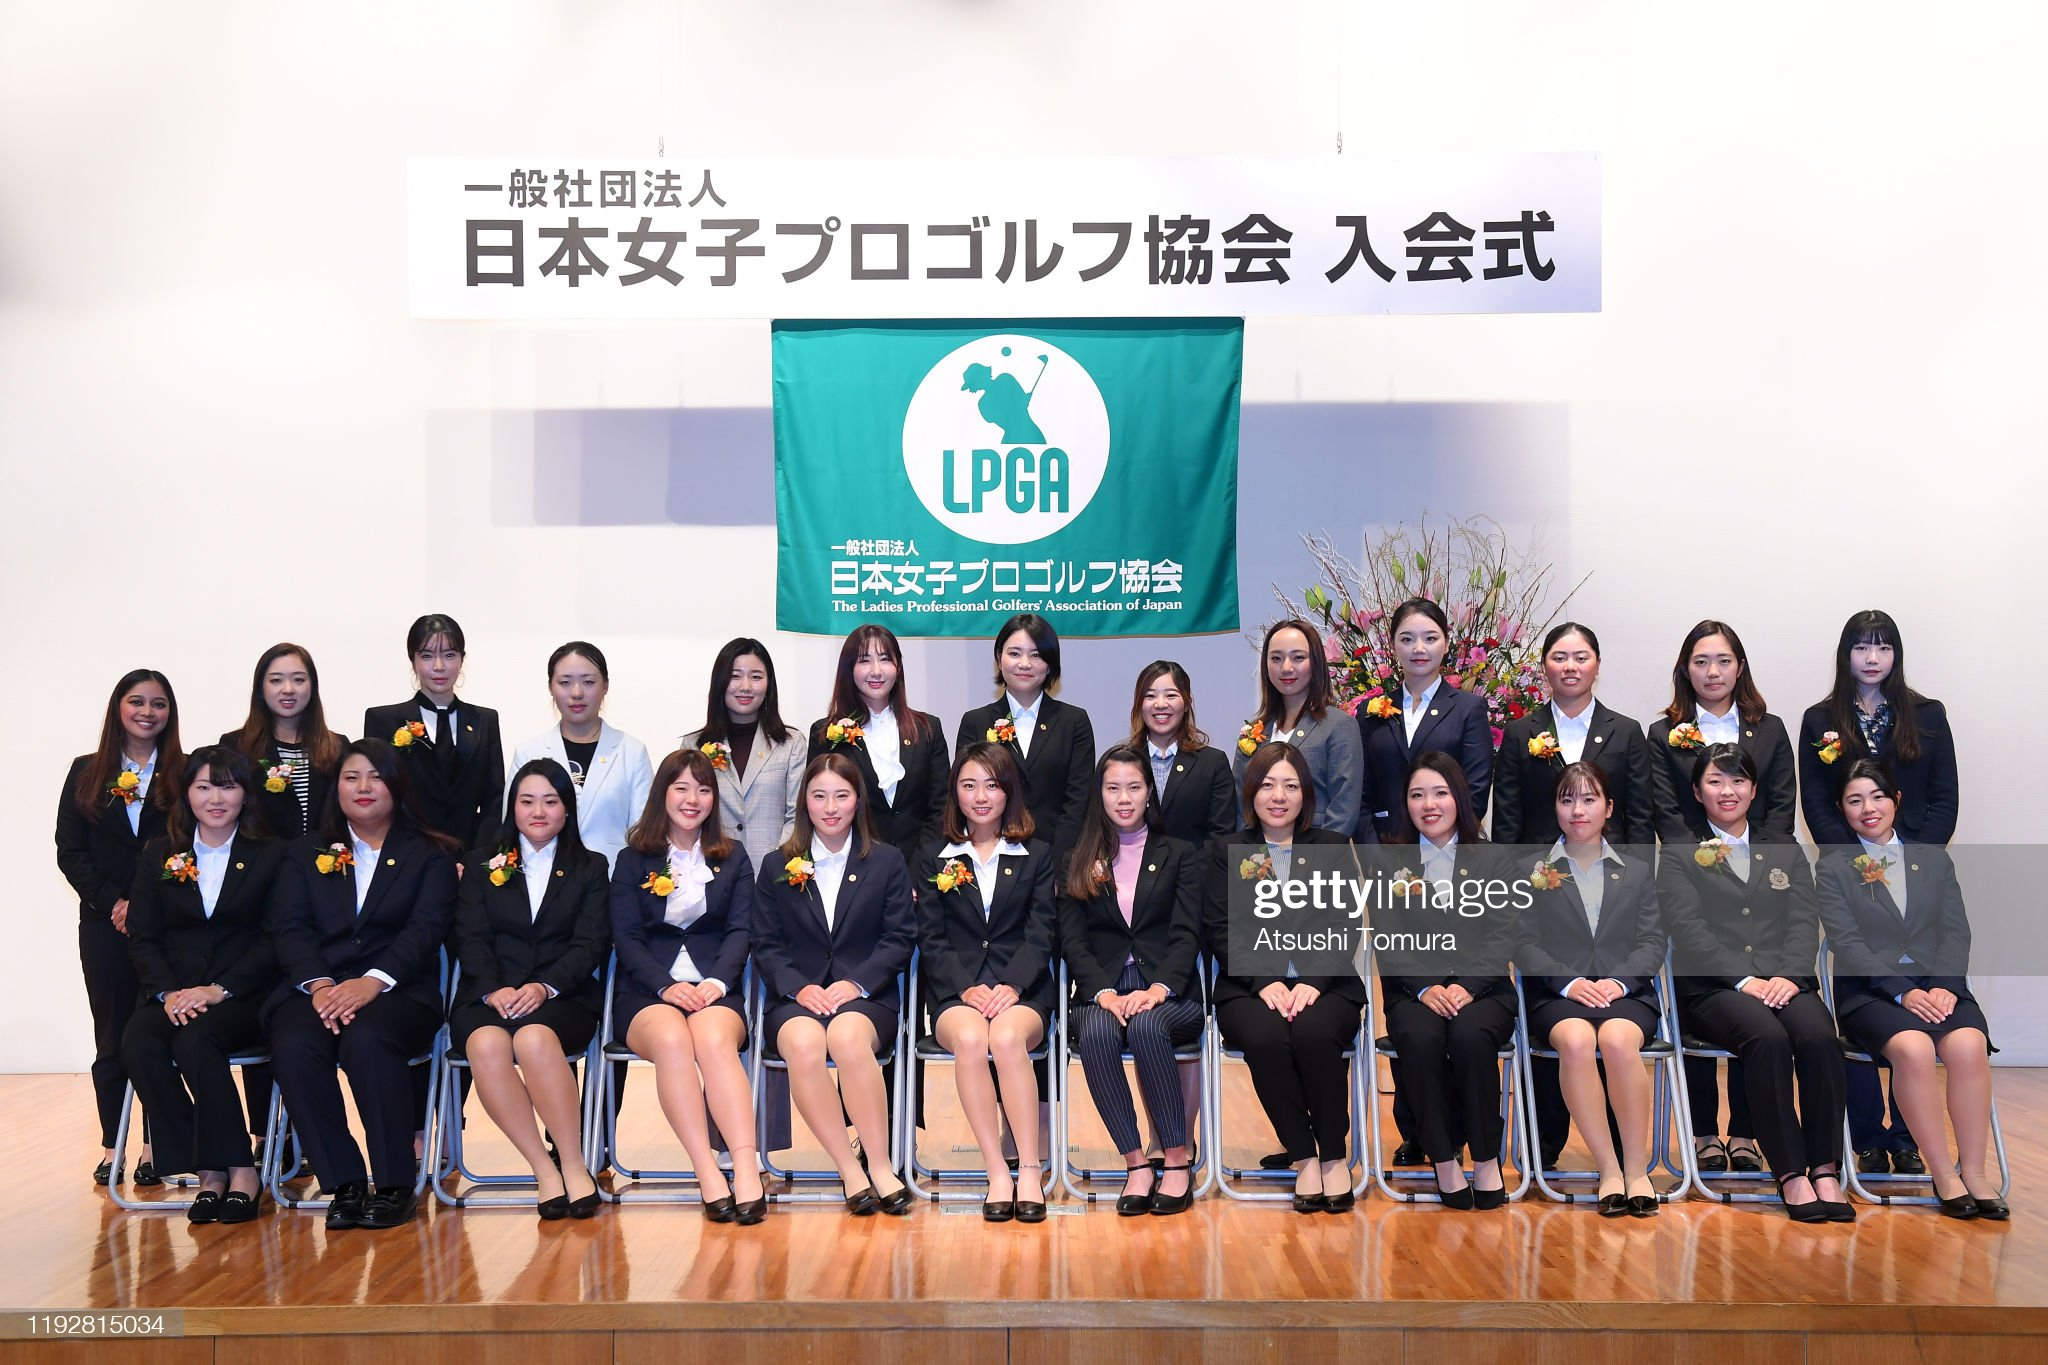 https://media.gettyimages.com/photos/japanese-lpga-2019-new-members-pose-for-photo-session-during-the-lpga-picture-id1192815034?s=2048x2048